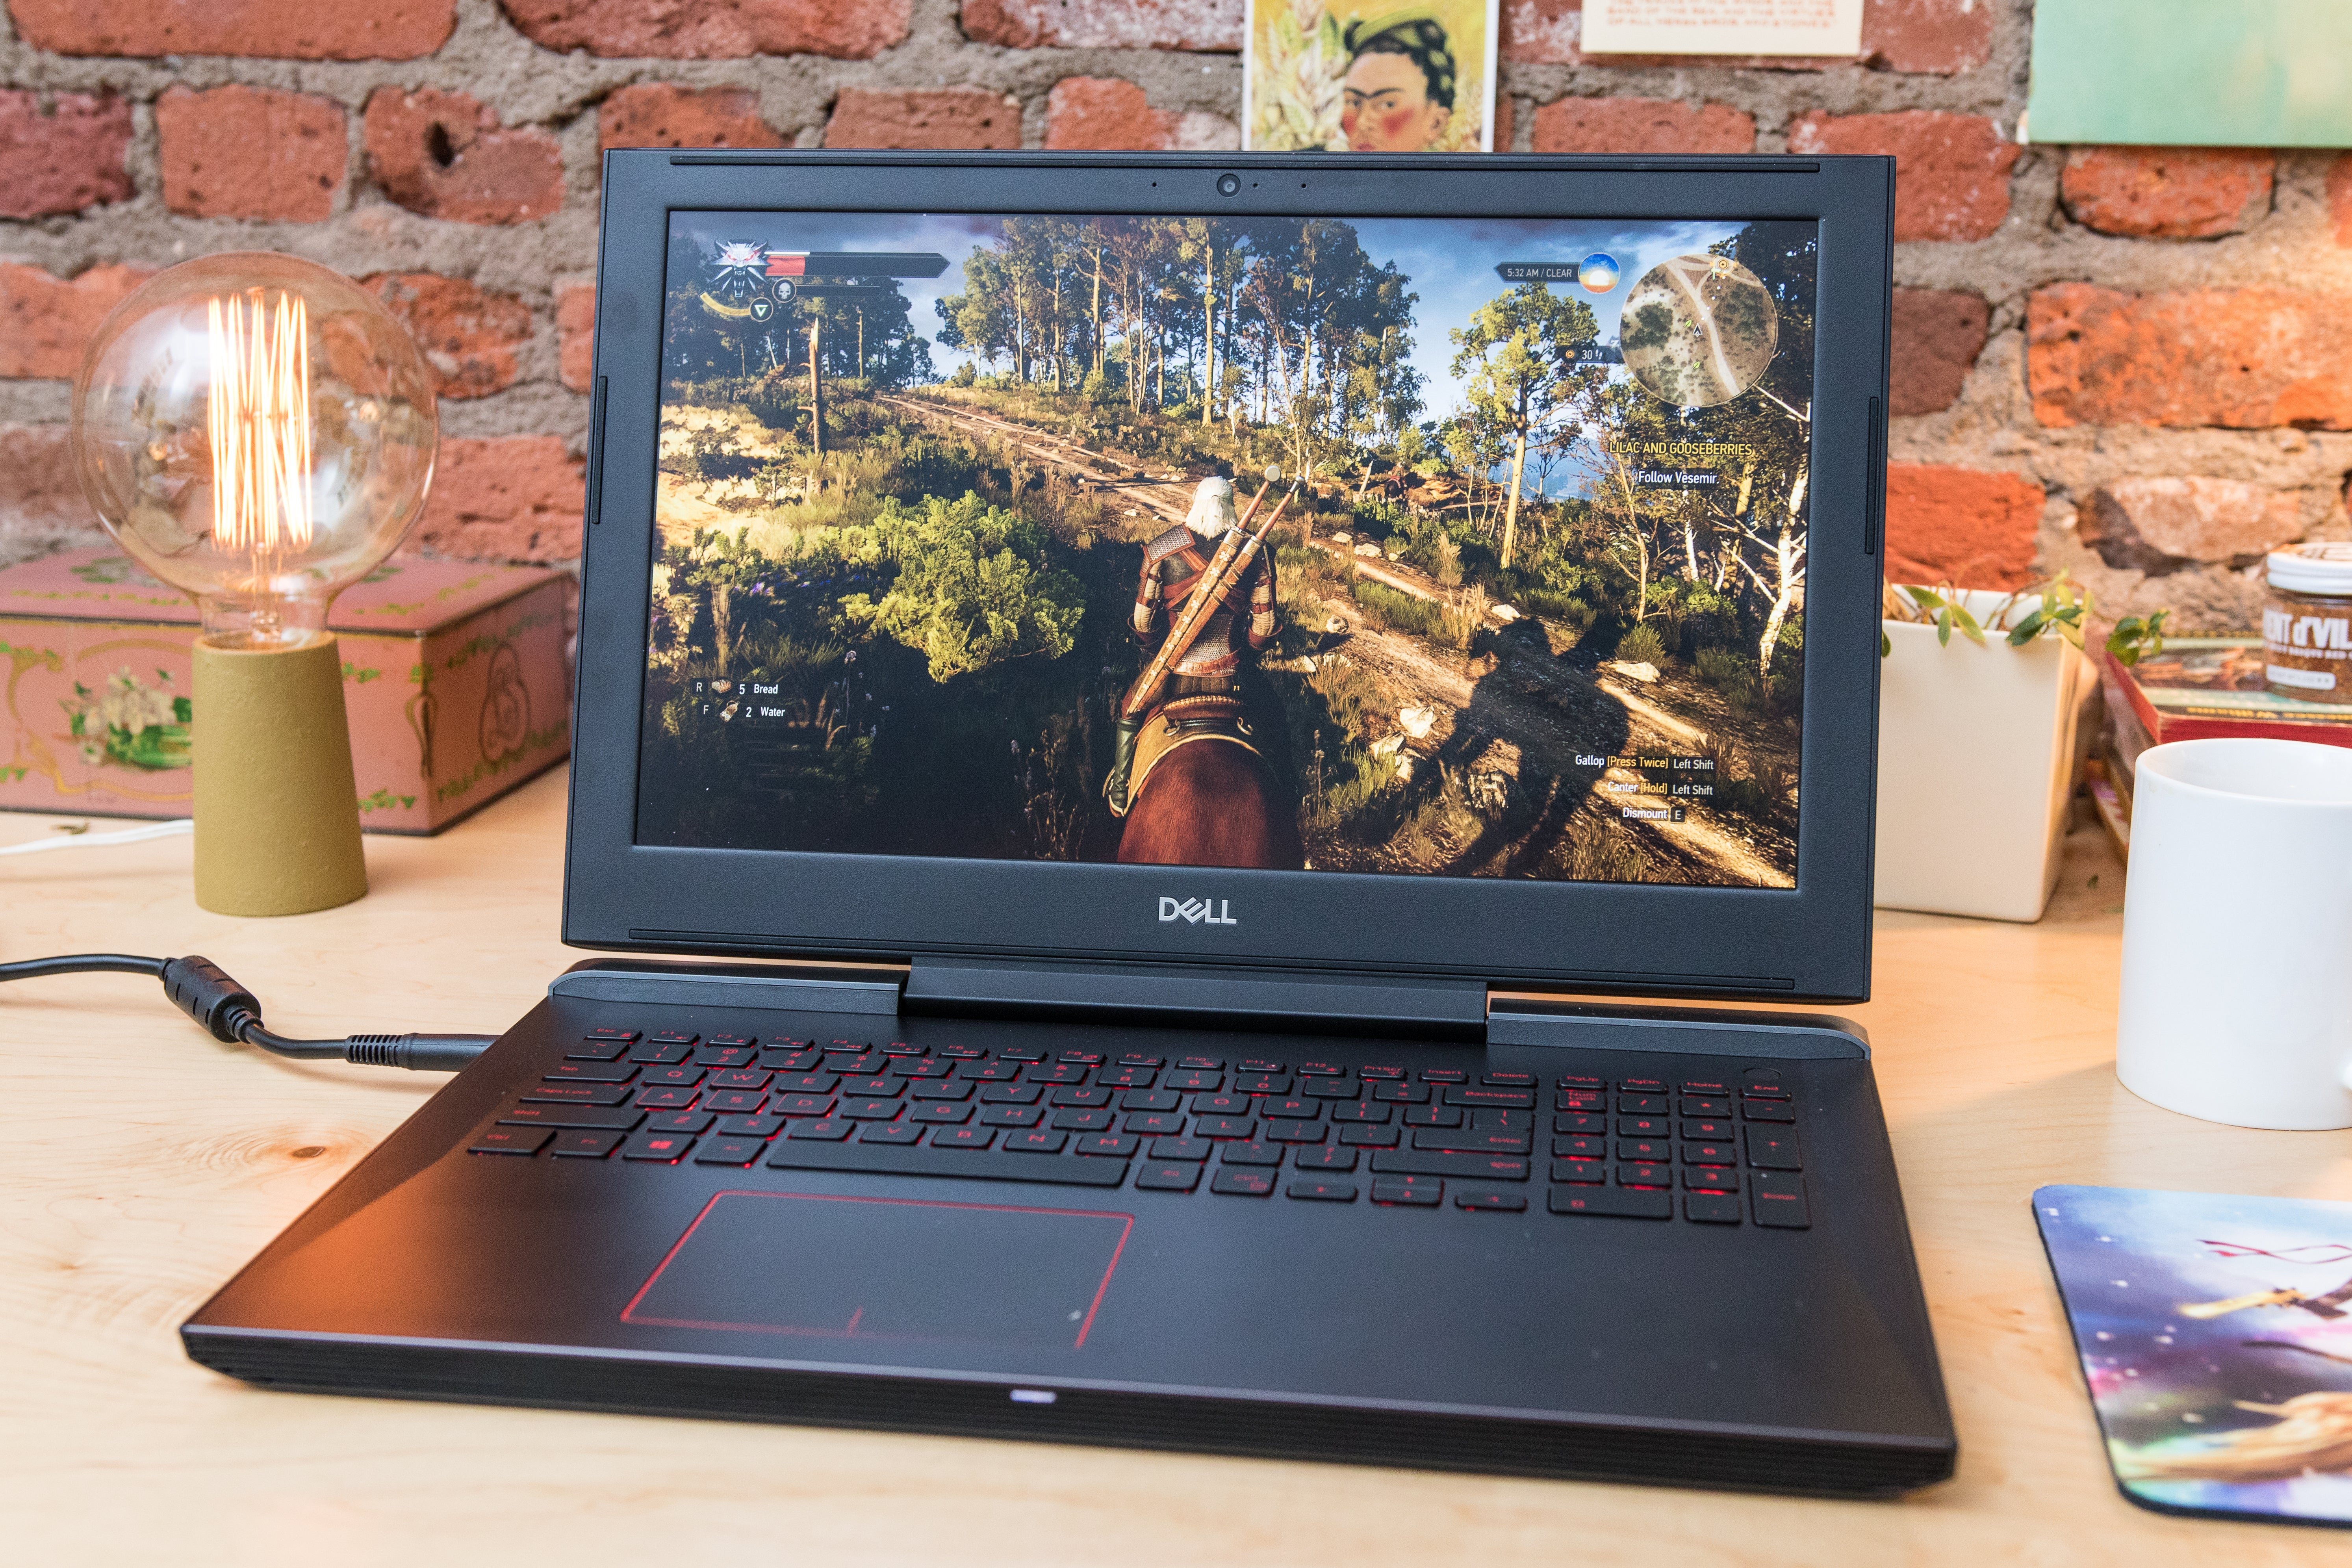 Dell Inspiron 15 7000 Gaming on a desk.